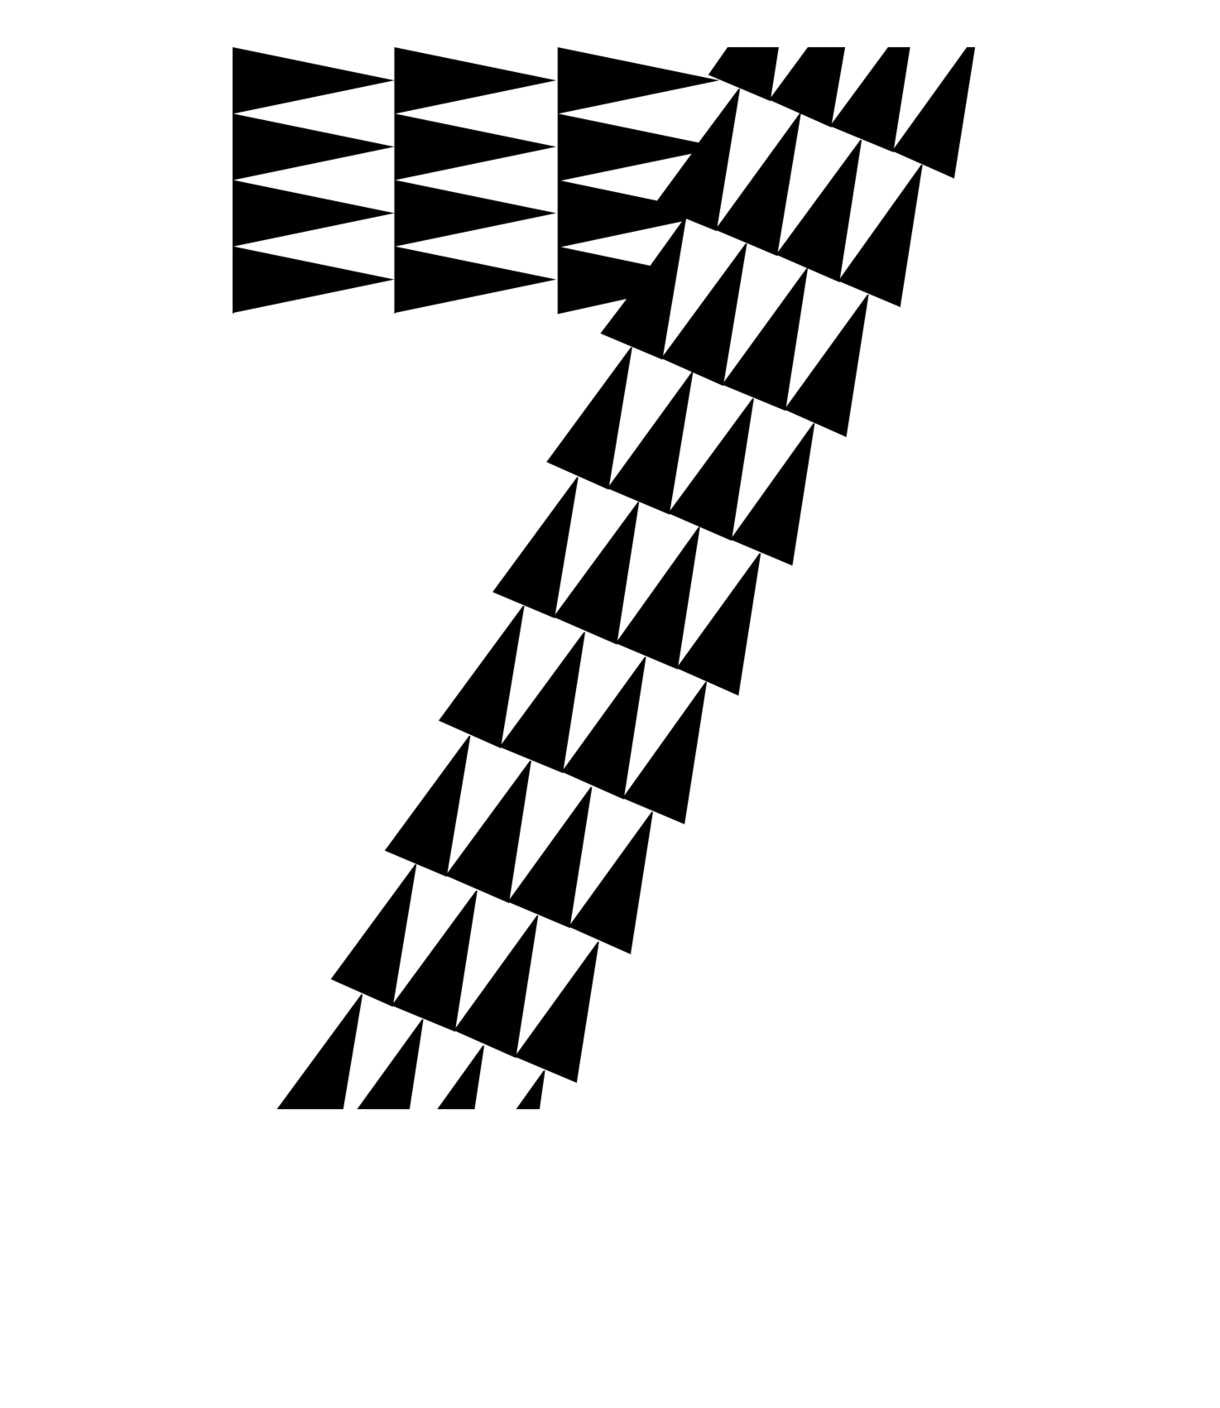 pattern-project-letters-32-1220x1407px